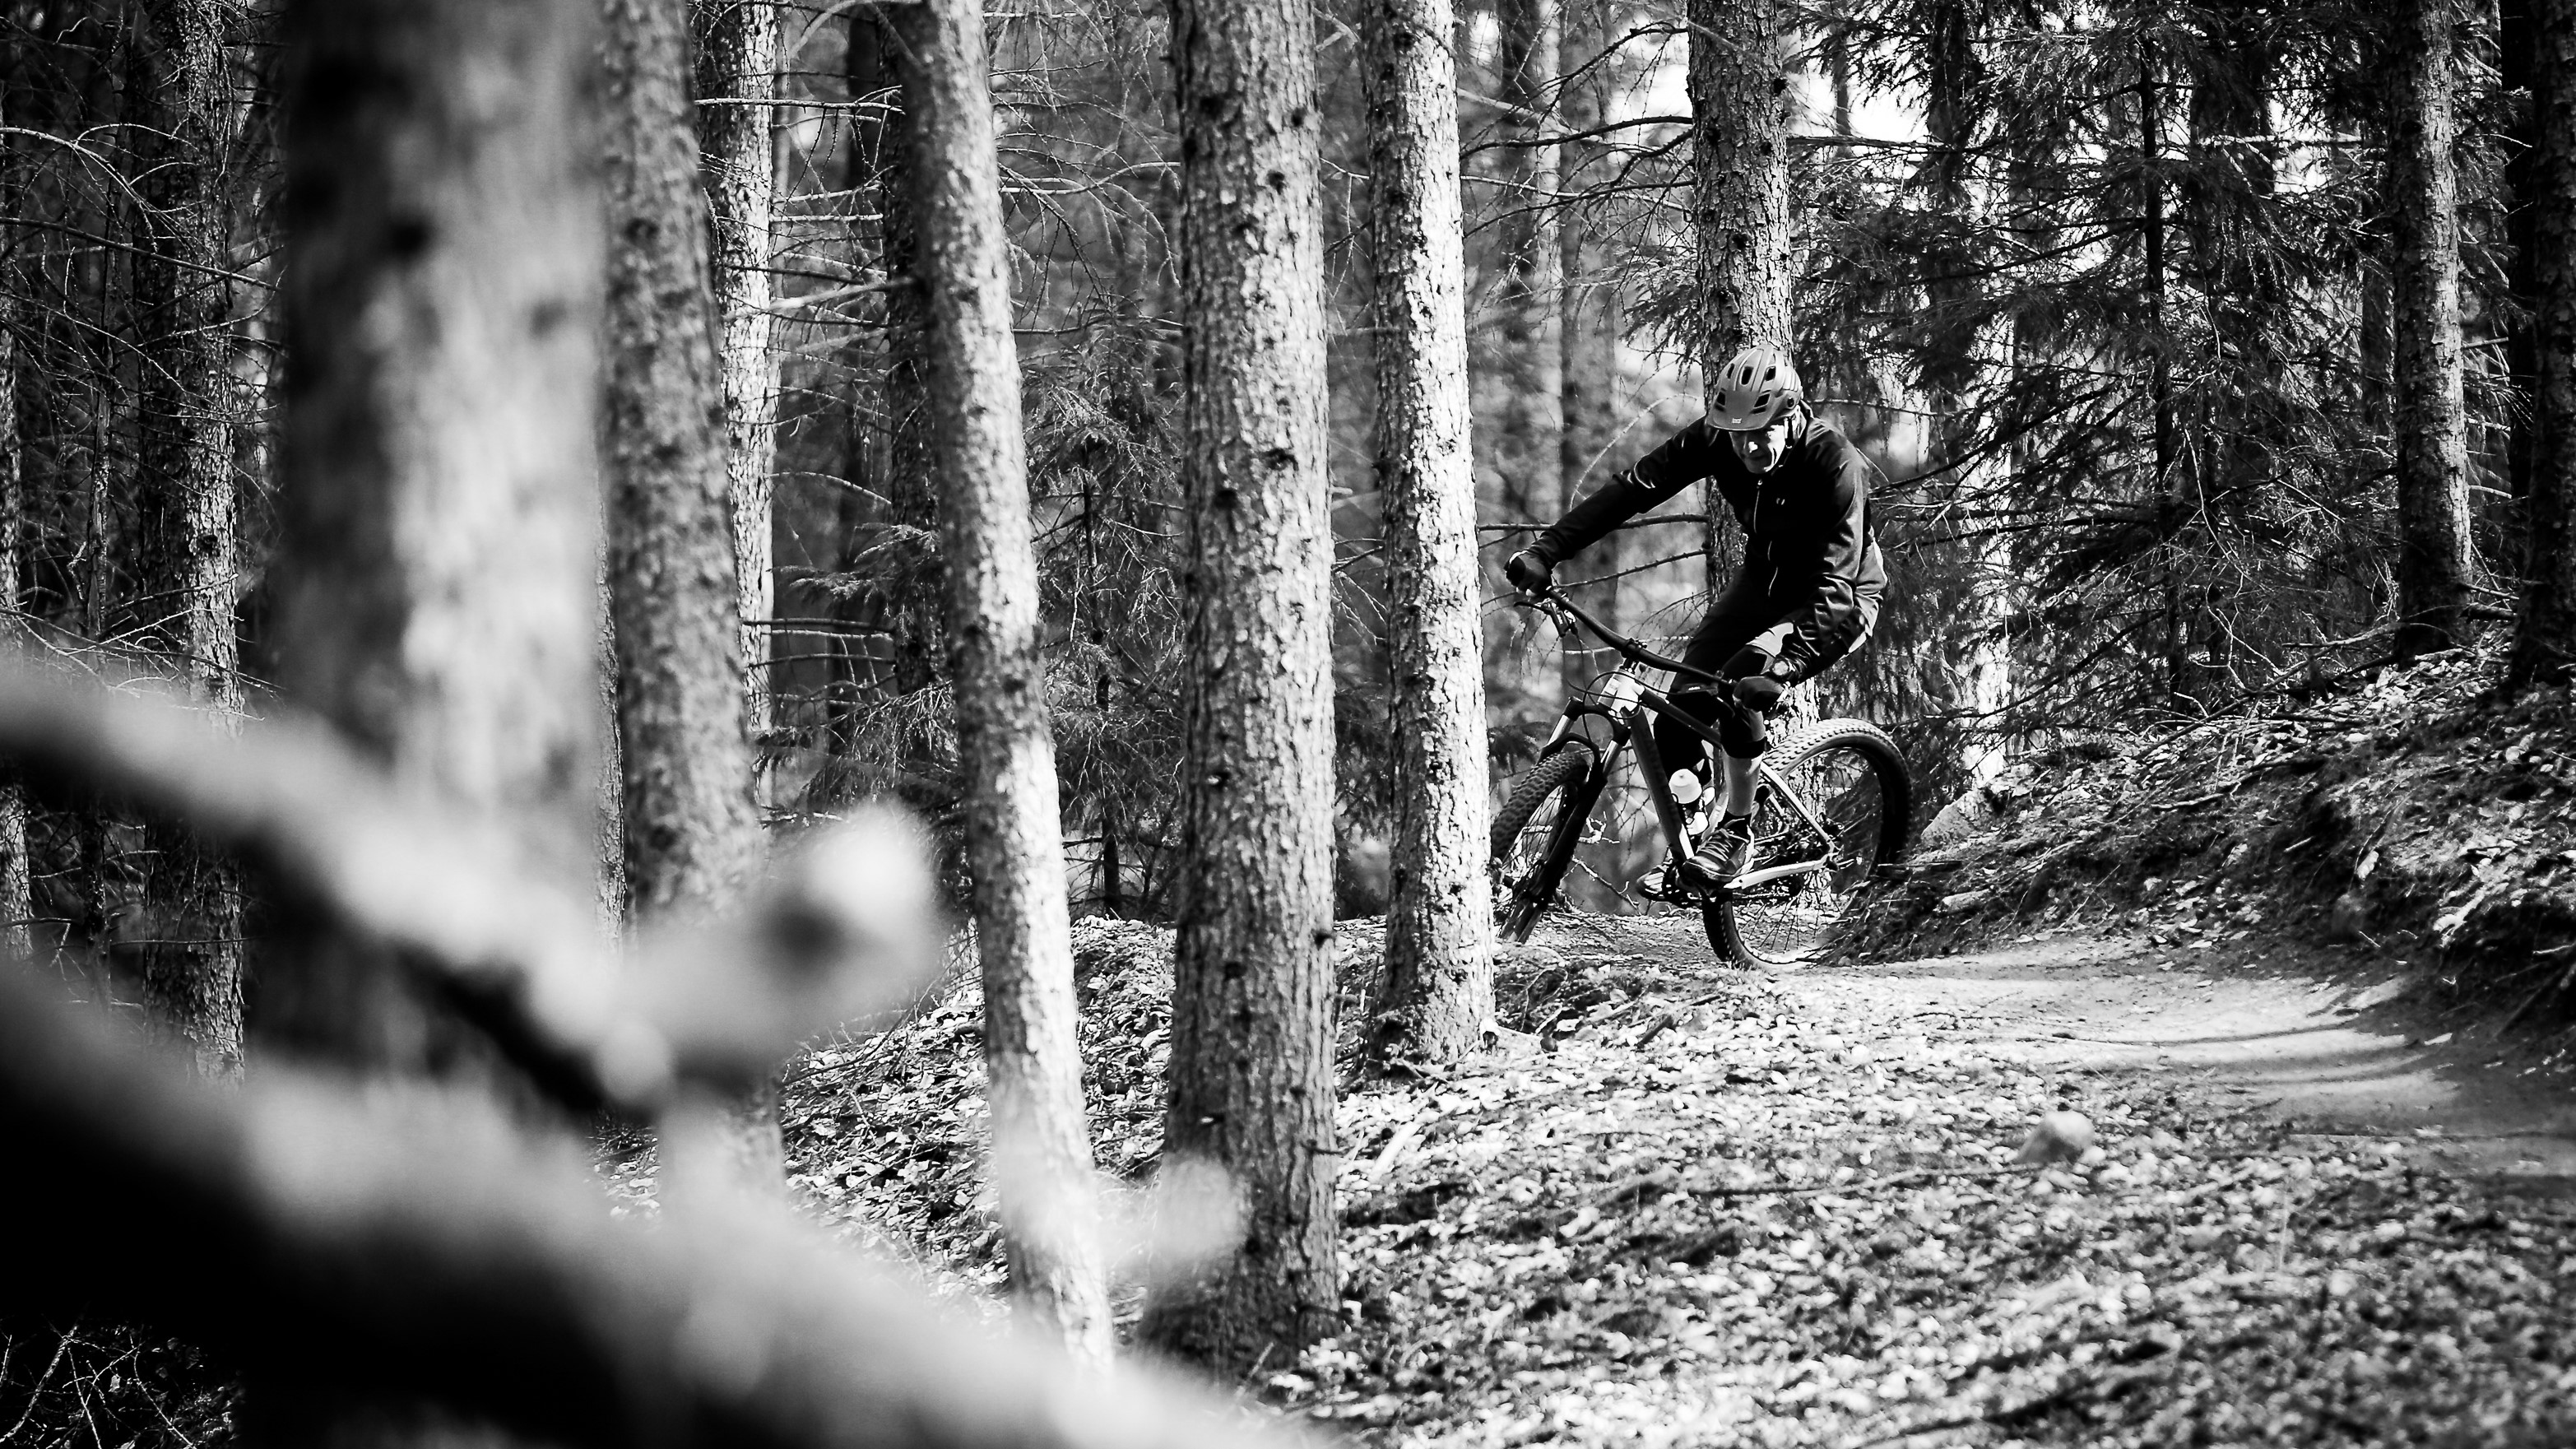 Mountainbike action i skov. Sort hvid-foto.